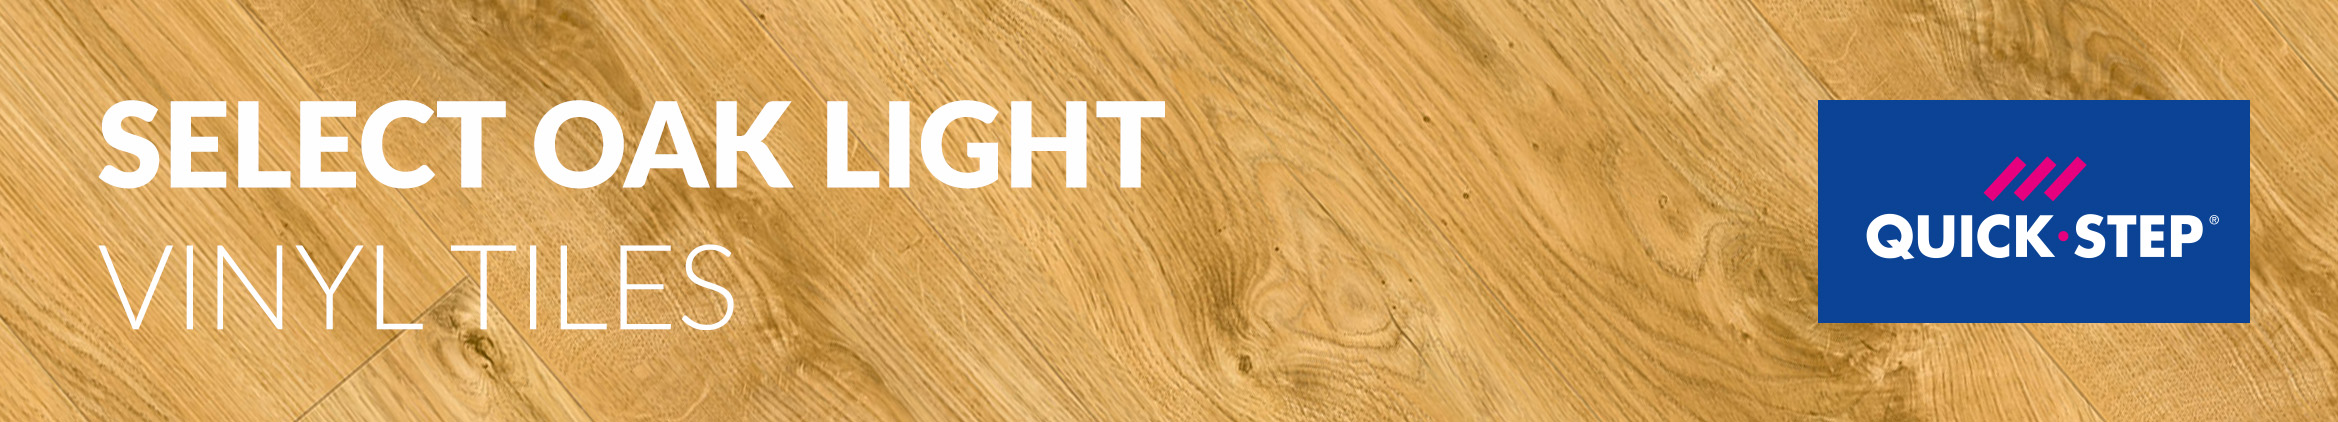 Select Oak Light Quick Step Vinyl